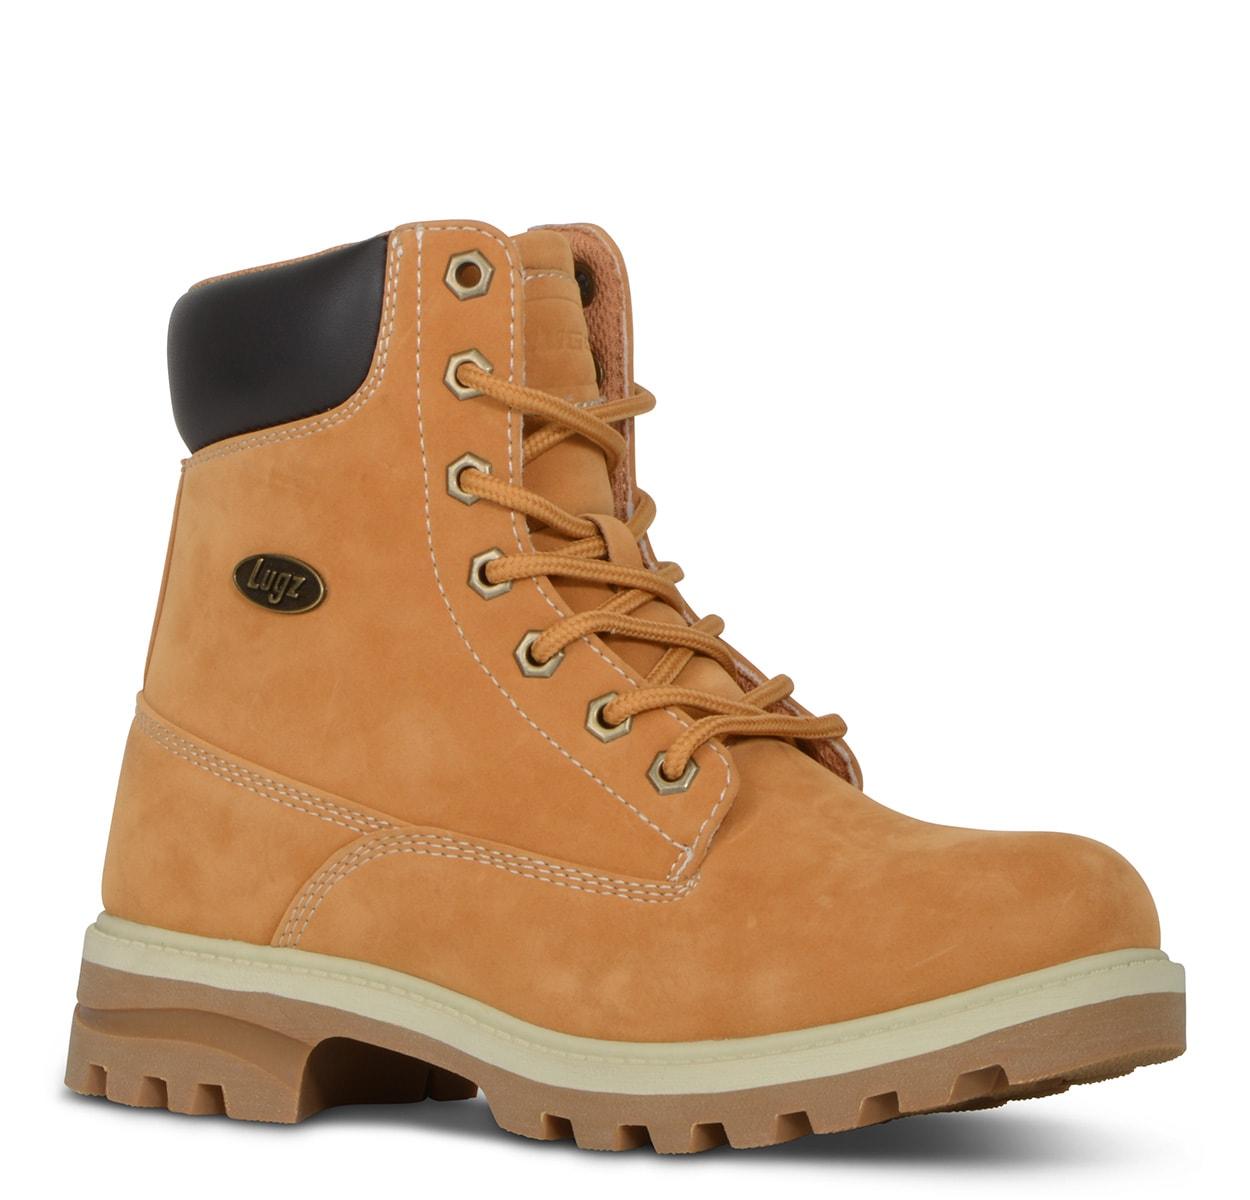 Women's Empire Hi Water Resistant 6-Inch Boot (Choose Your Color: GOLDEN WHEAT/CREAM/BARK, Choose Your Size: 5.5)